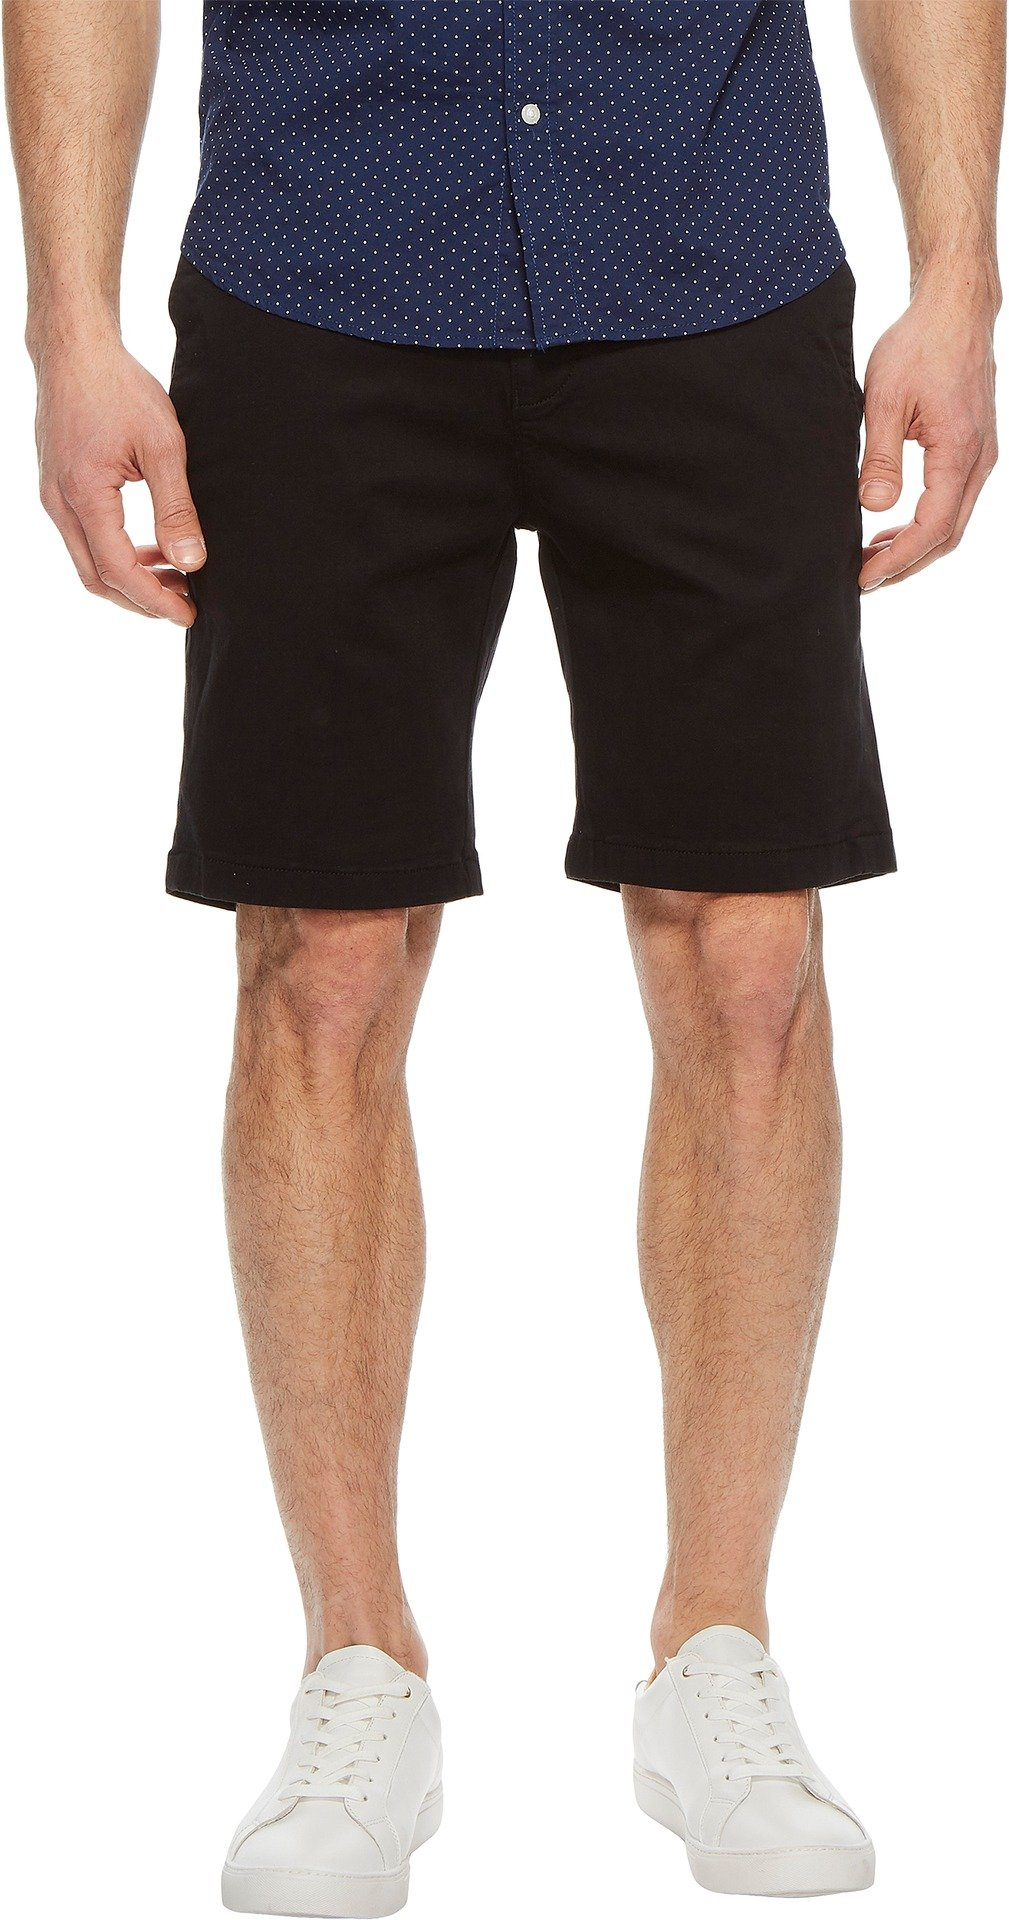 34 Heritage Men's Nevada Shorts In Black Twill Black 34 9.5